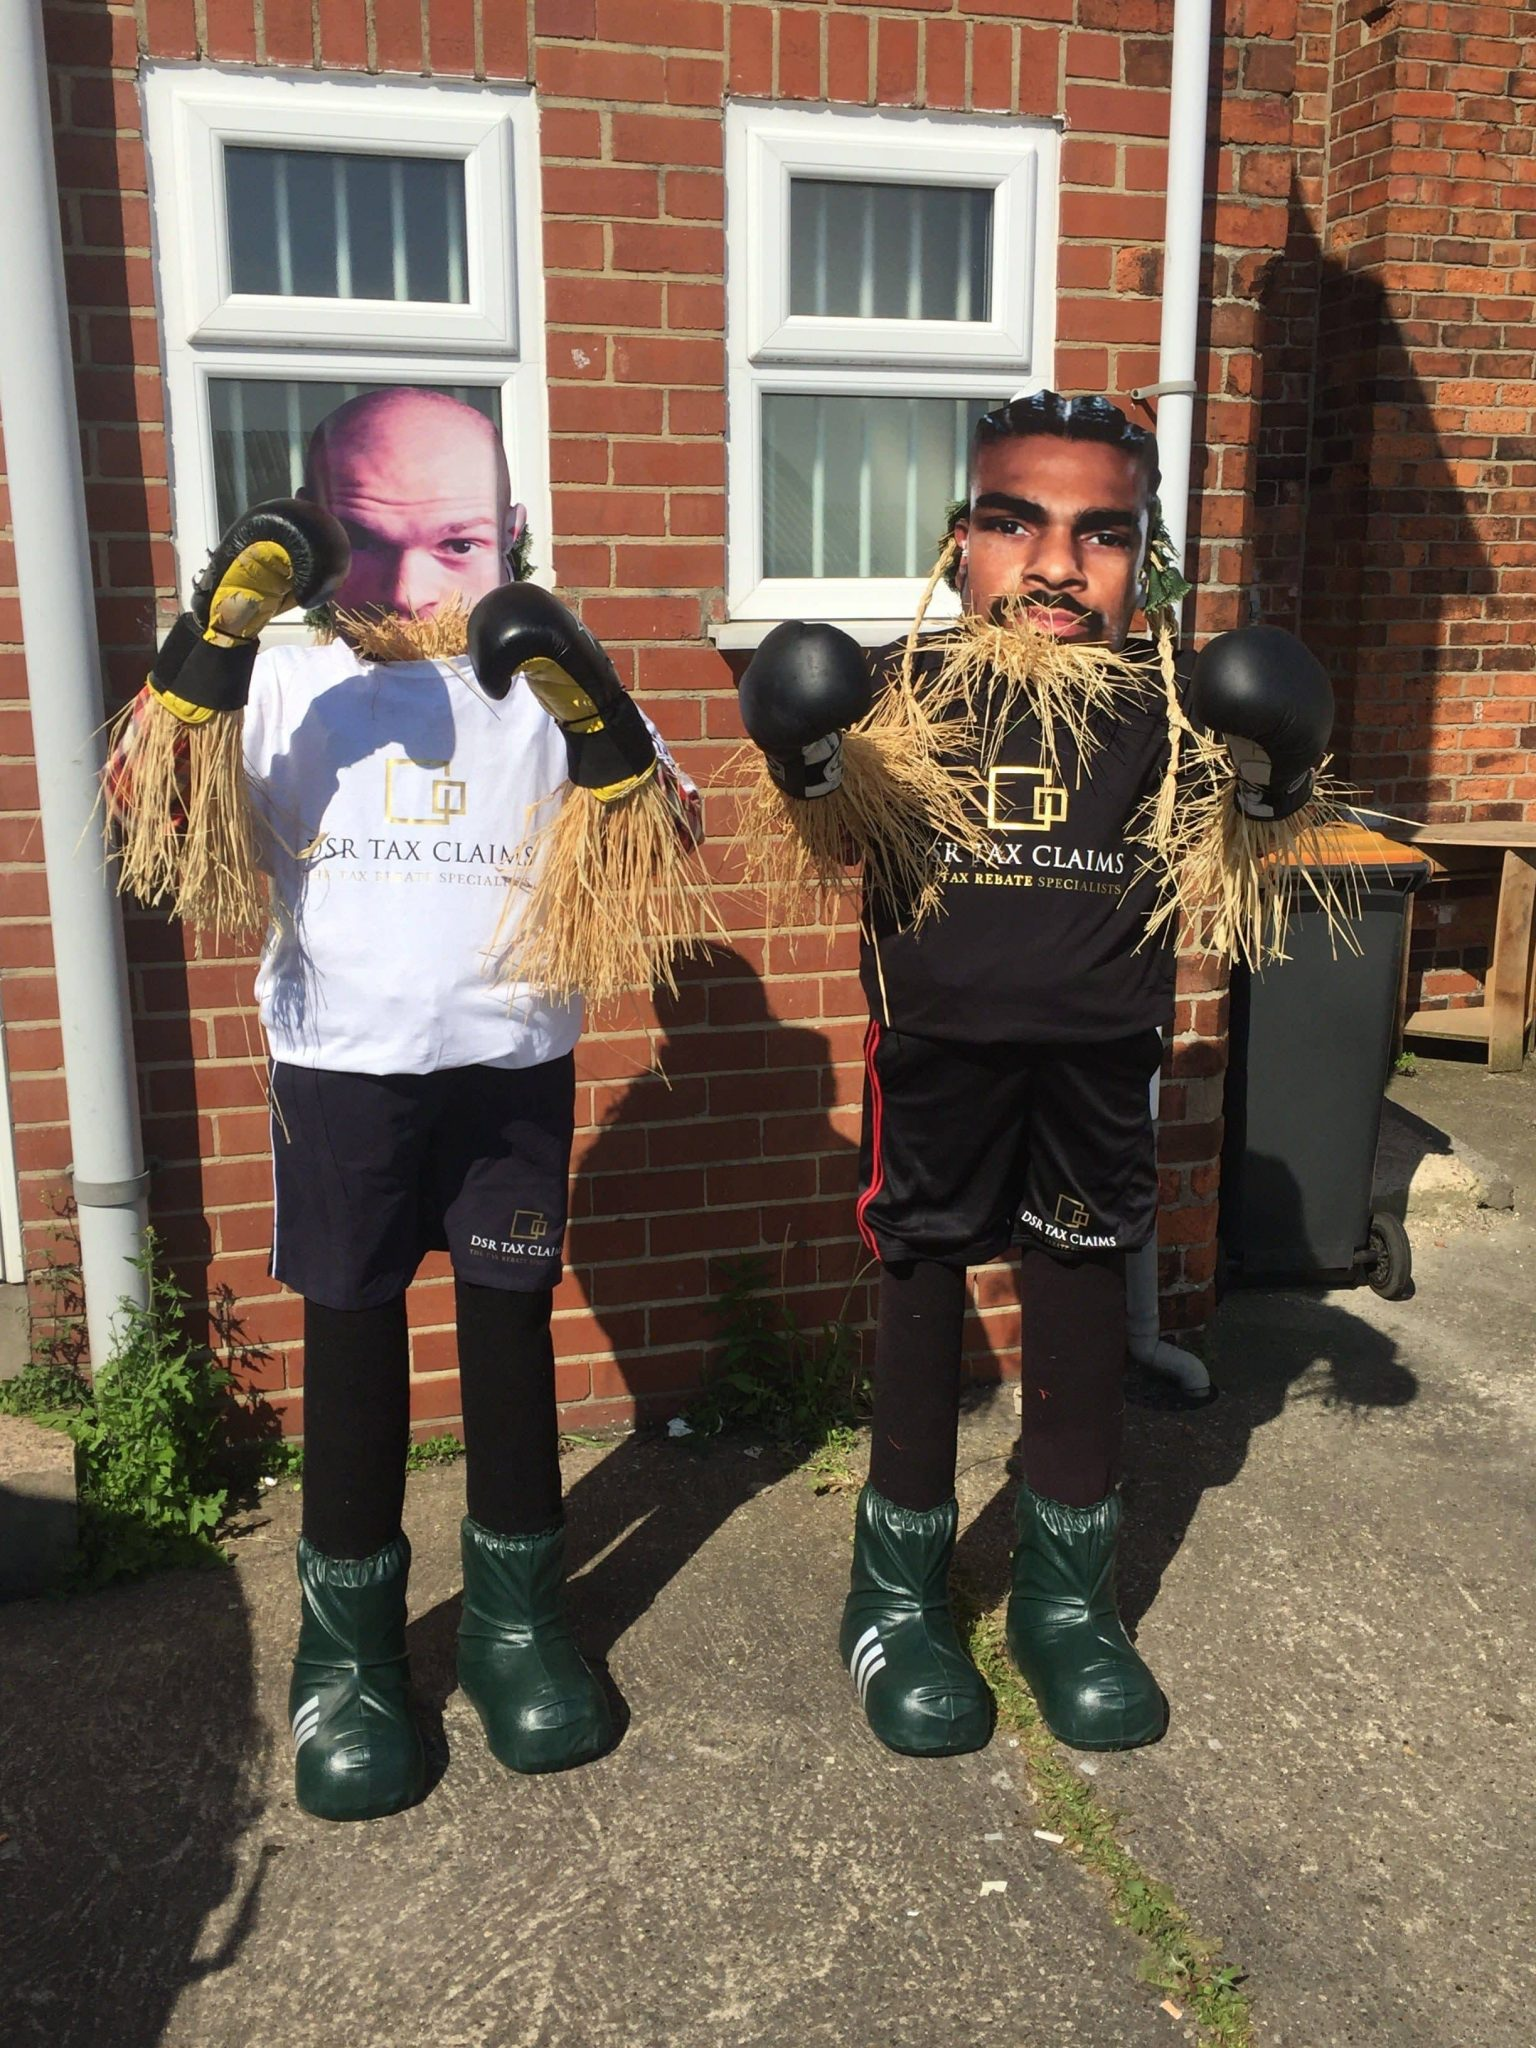 Greasley Gathering - David Hay and Tyson Strawy scarecrows